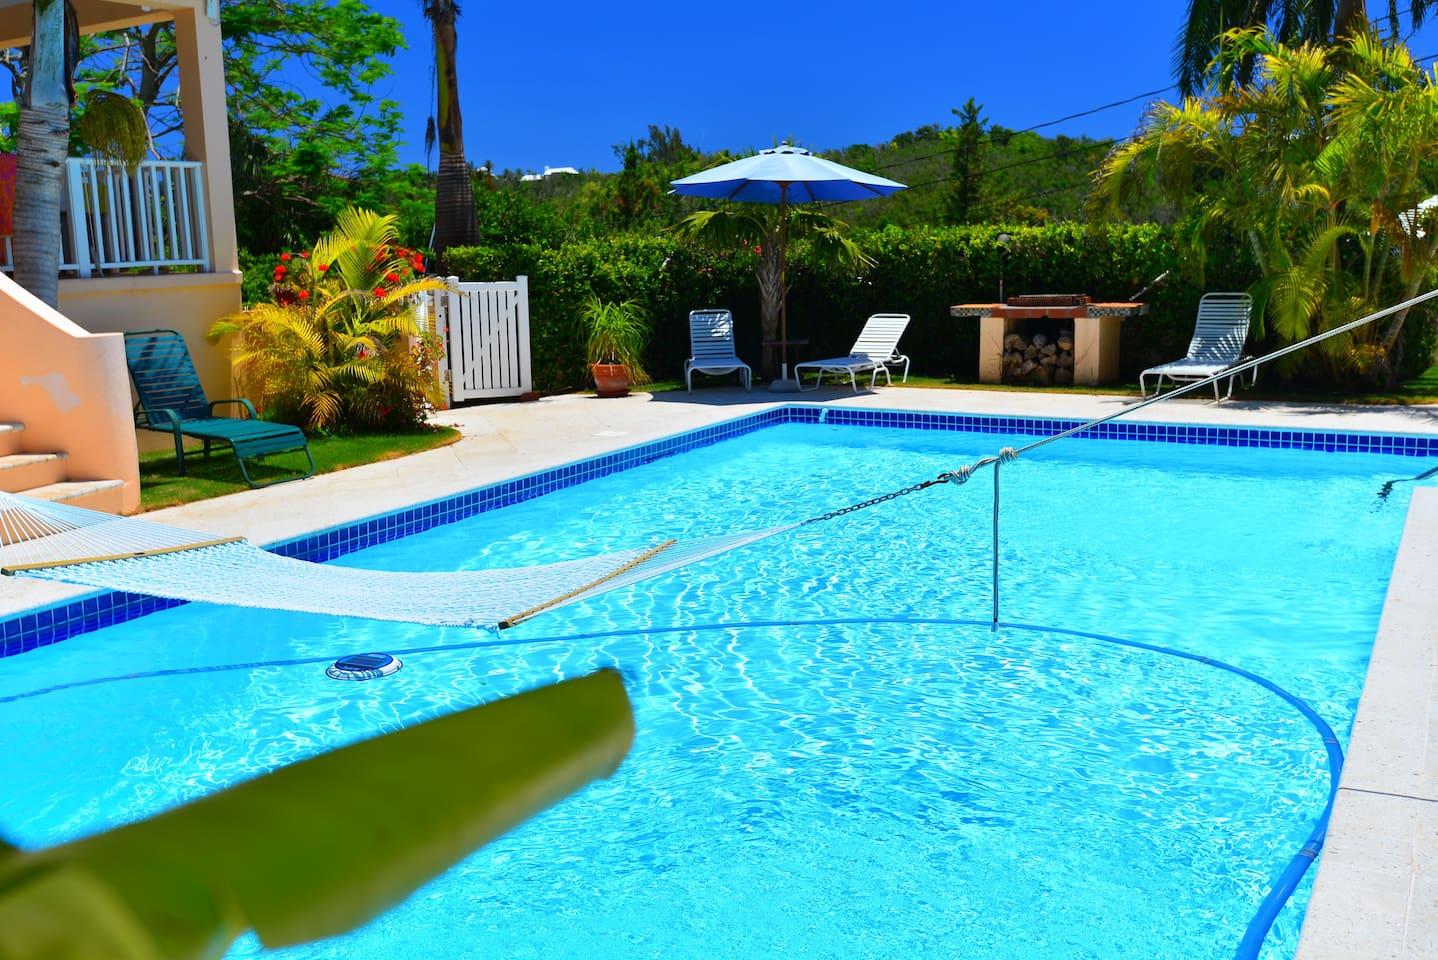 Relax in a lounger by the pool - or in the hammock over the pool!!